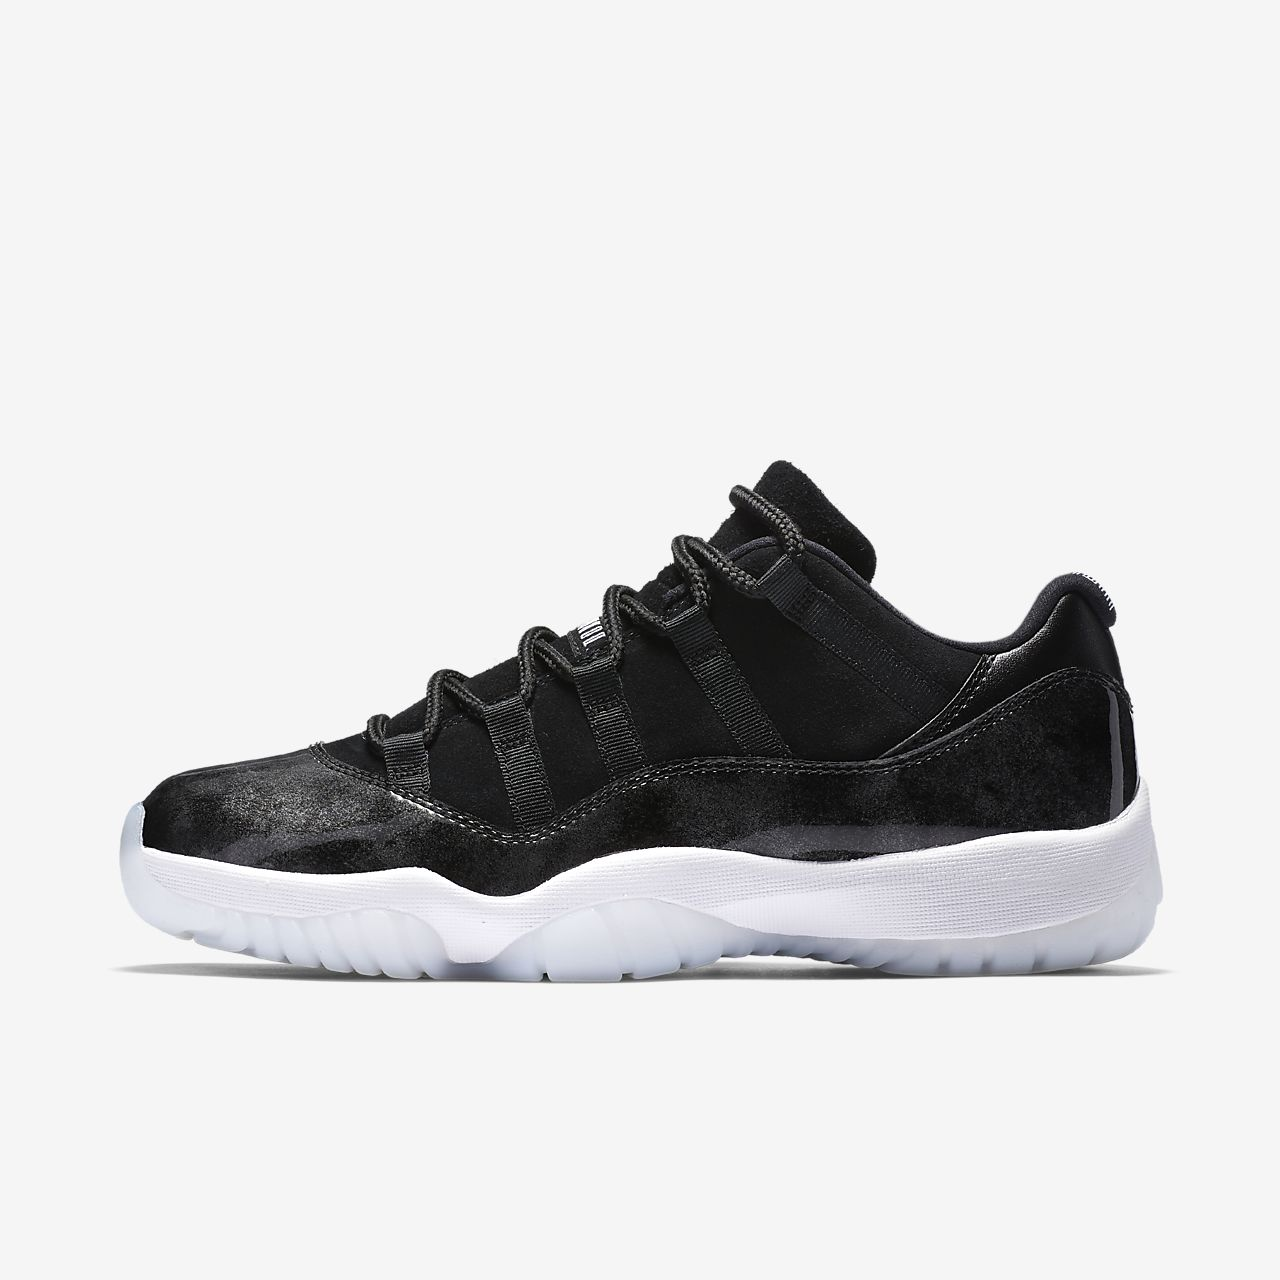 air jordan 11 retro noir